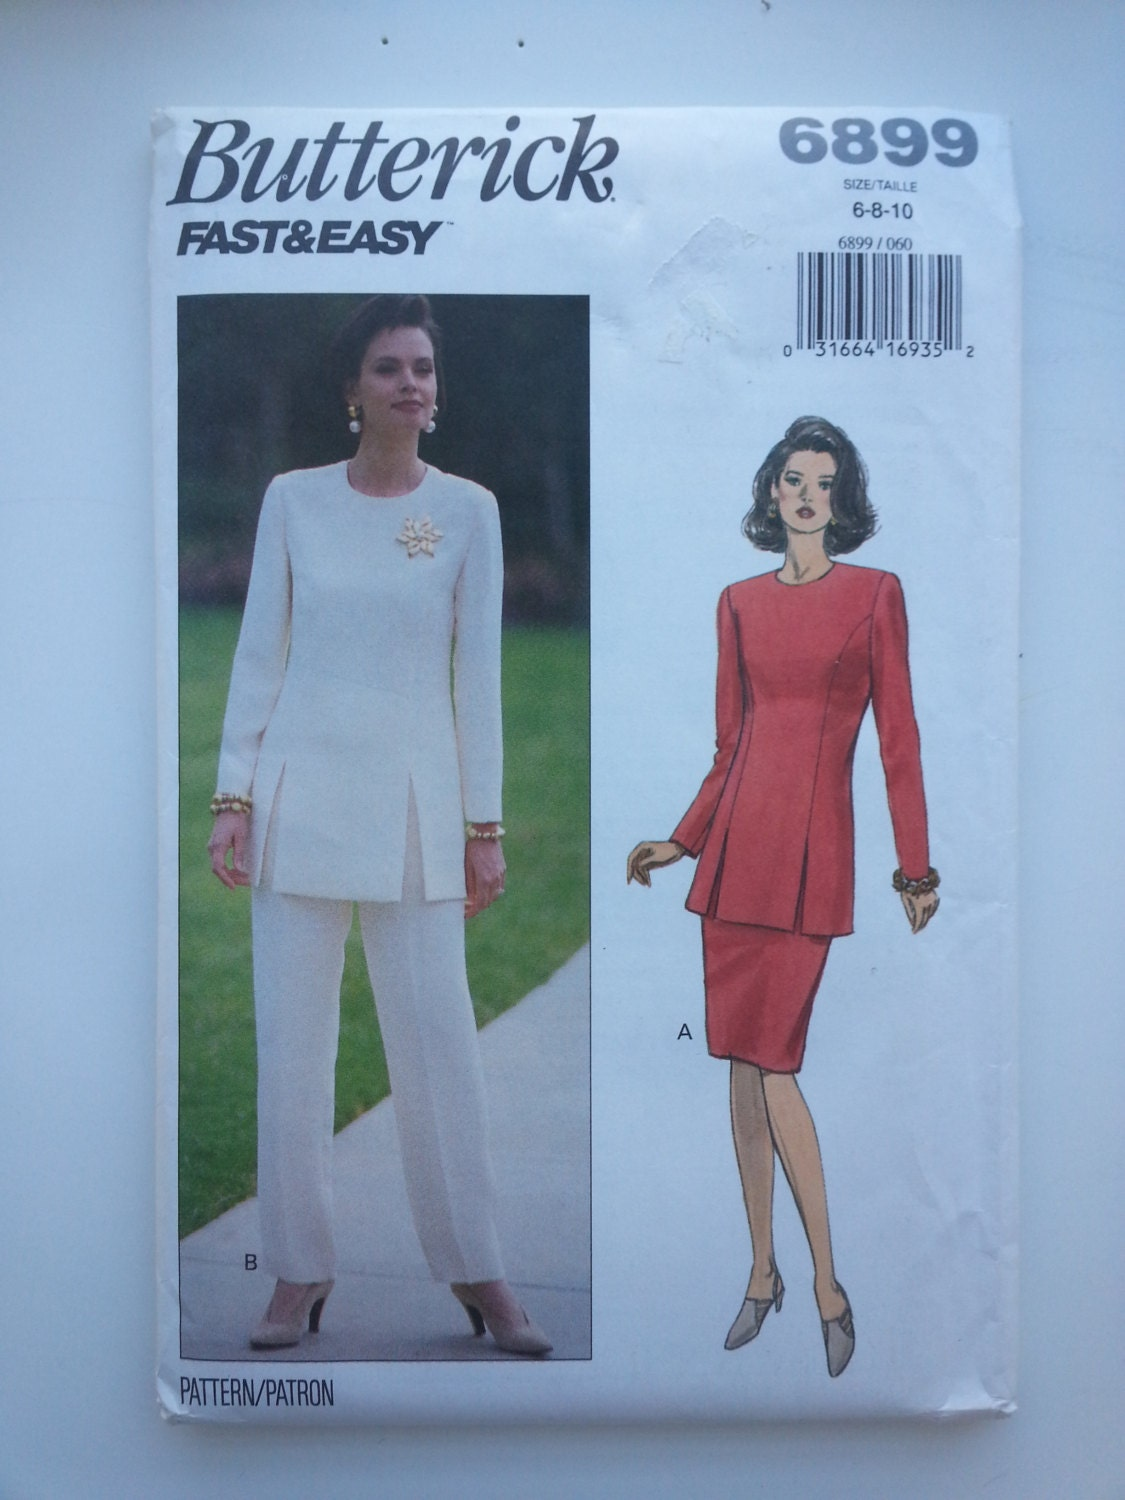 Womens pant suit / vintage sewing patterns / 90s sewing